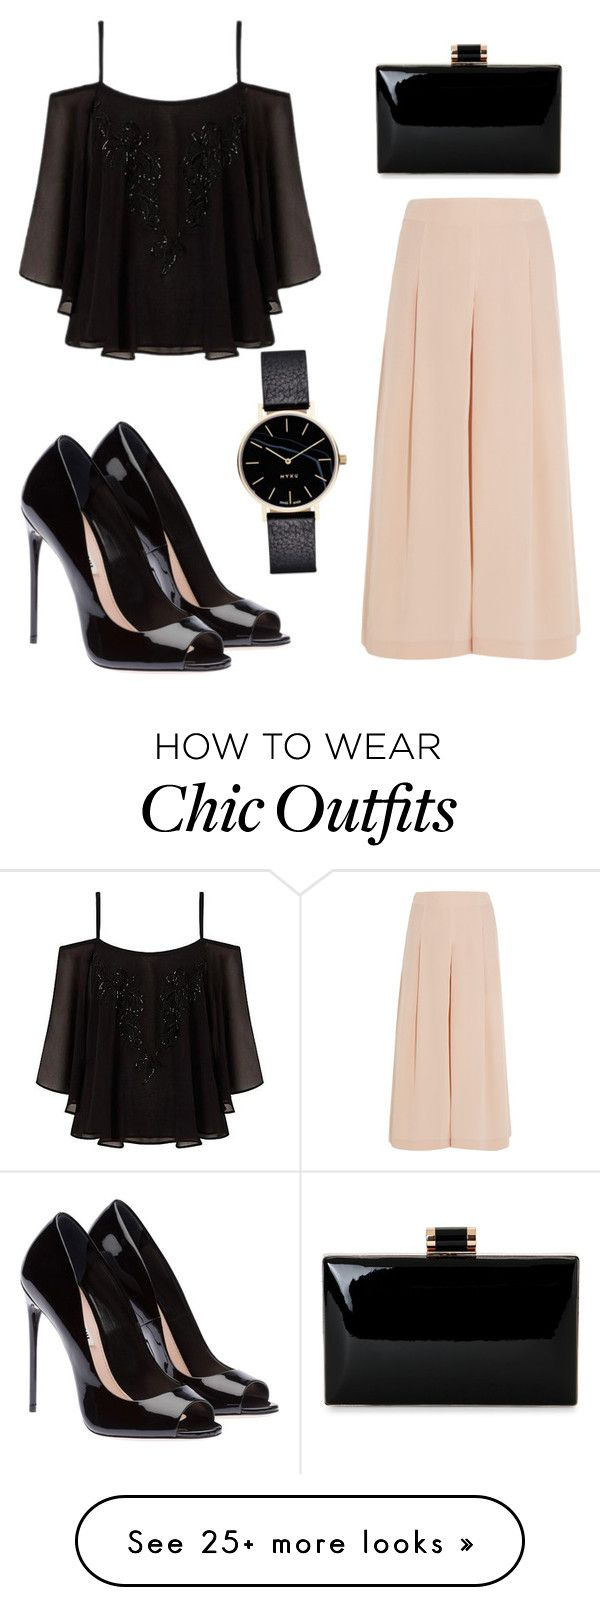 """"""""""" by gabrielledixon on Polyvore featuring TIBI, Lipsy, TrickyTrend and culottes"""